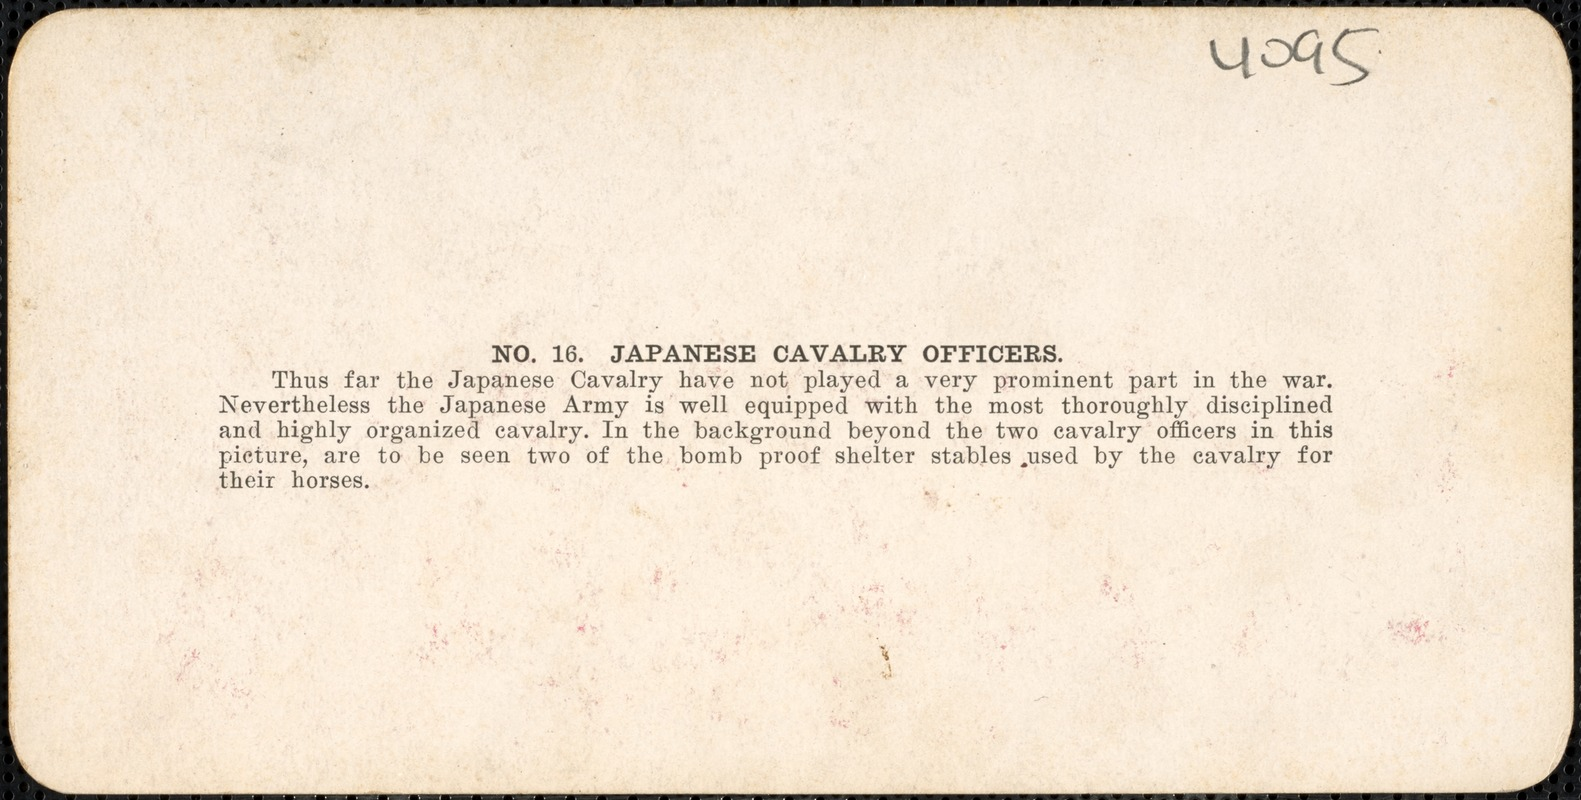 Japanese cavalry officers